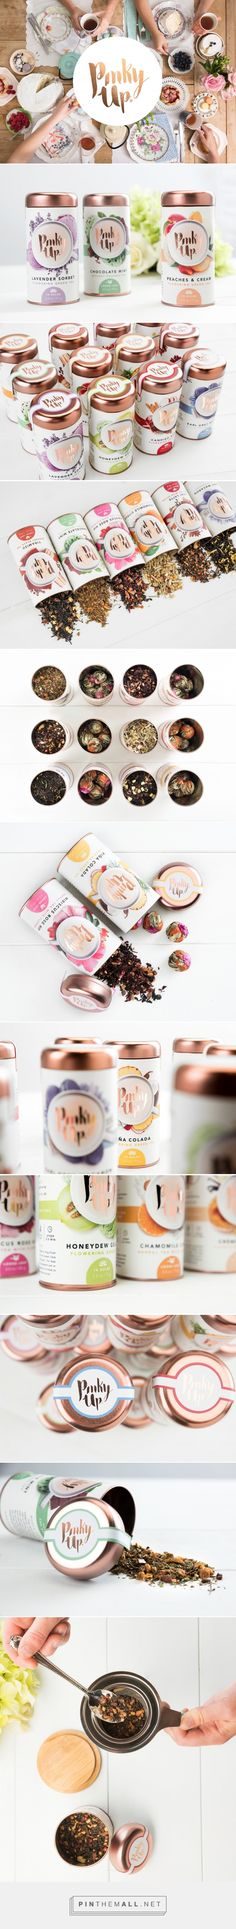 Pinky Up Tea / Packaging / Branding / Design / Ideas / Inspiration / Drink / Tea / Organic / Natural / Rose Gold / Copper / Botanical / Fruits / Flowers (Chocolate Art Graphics) Branding And Packaging, Fruit Packaging, Food Packaging Design, Pretty Packaging, Packaging Design Inspiration, Design Ideas, Packaging Ideas, Food Branding, Bottle Packaging